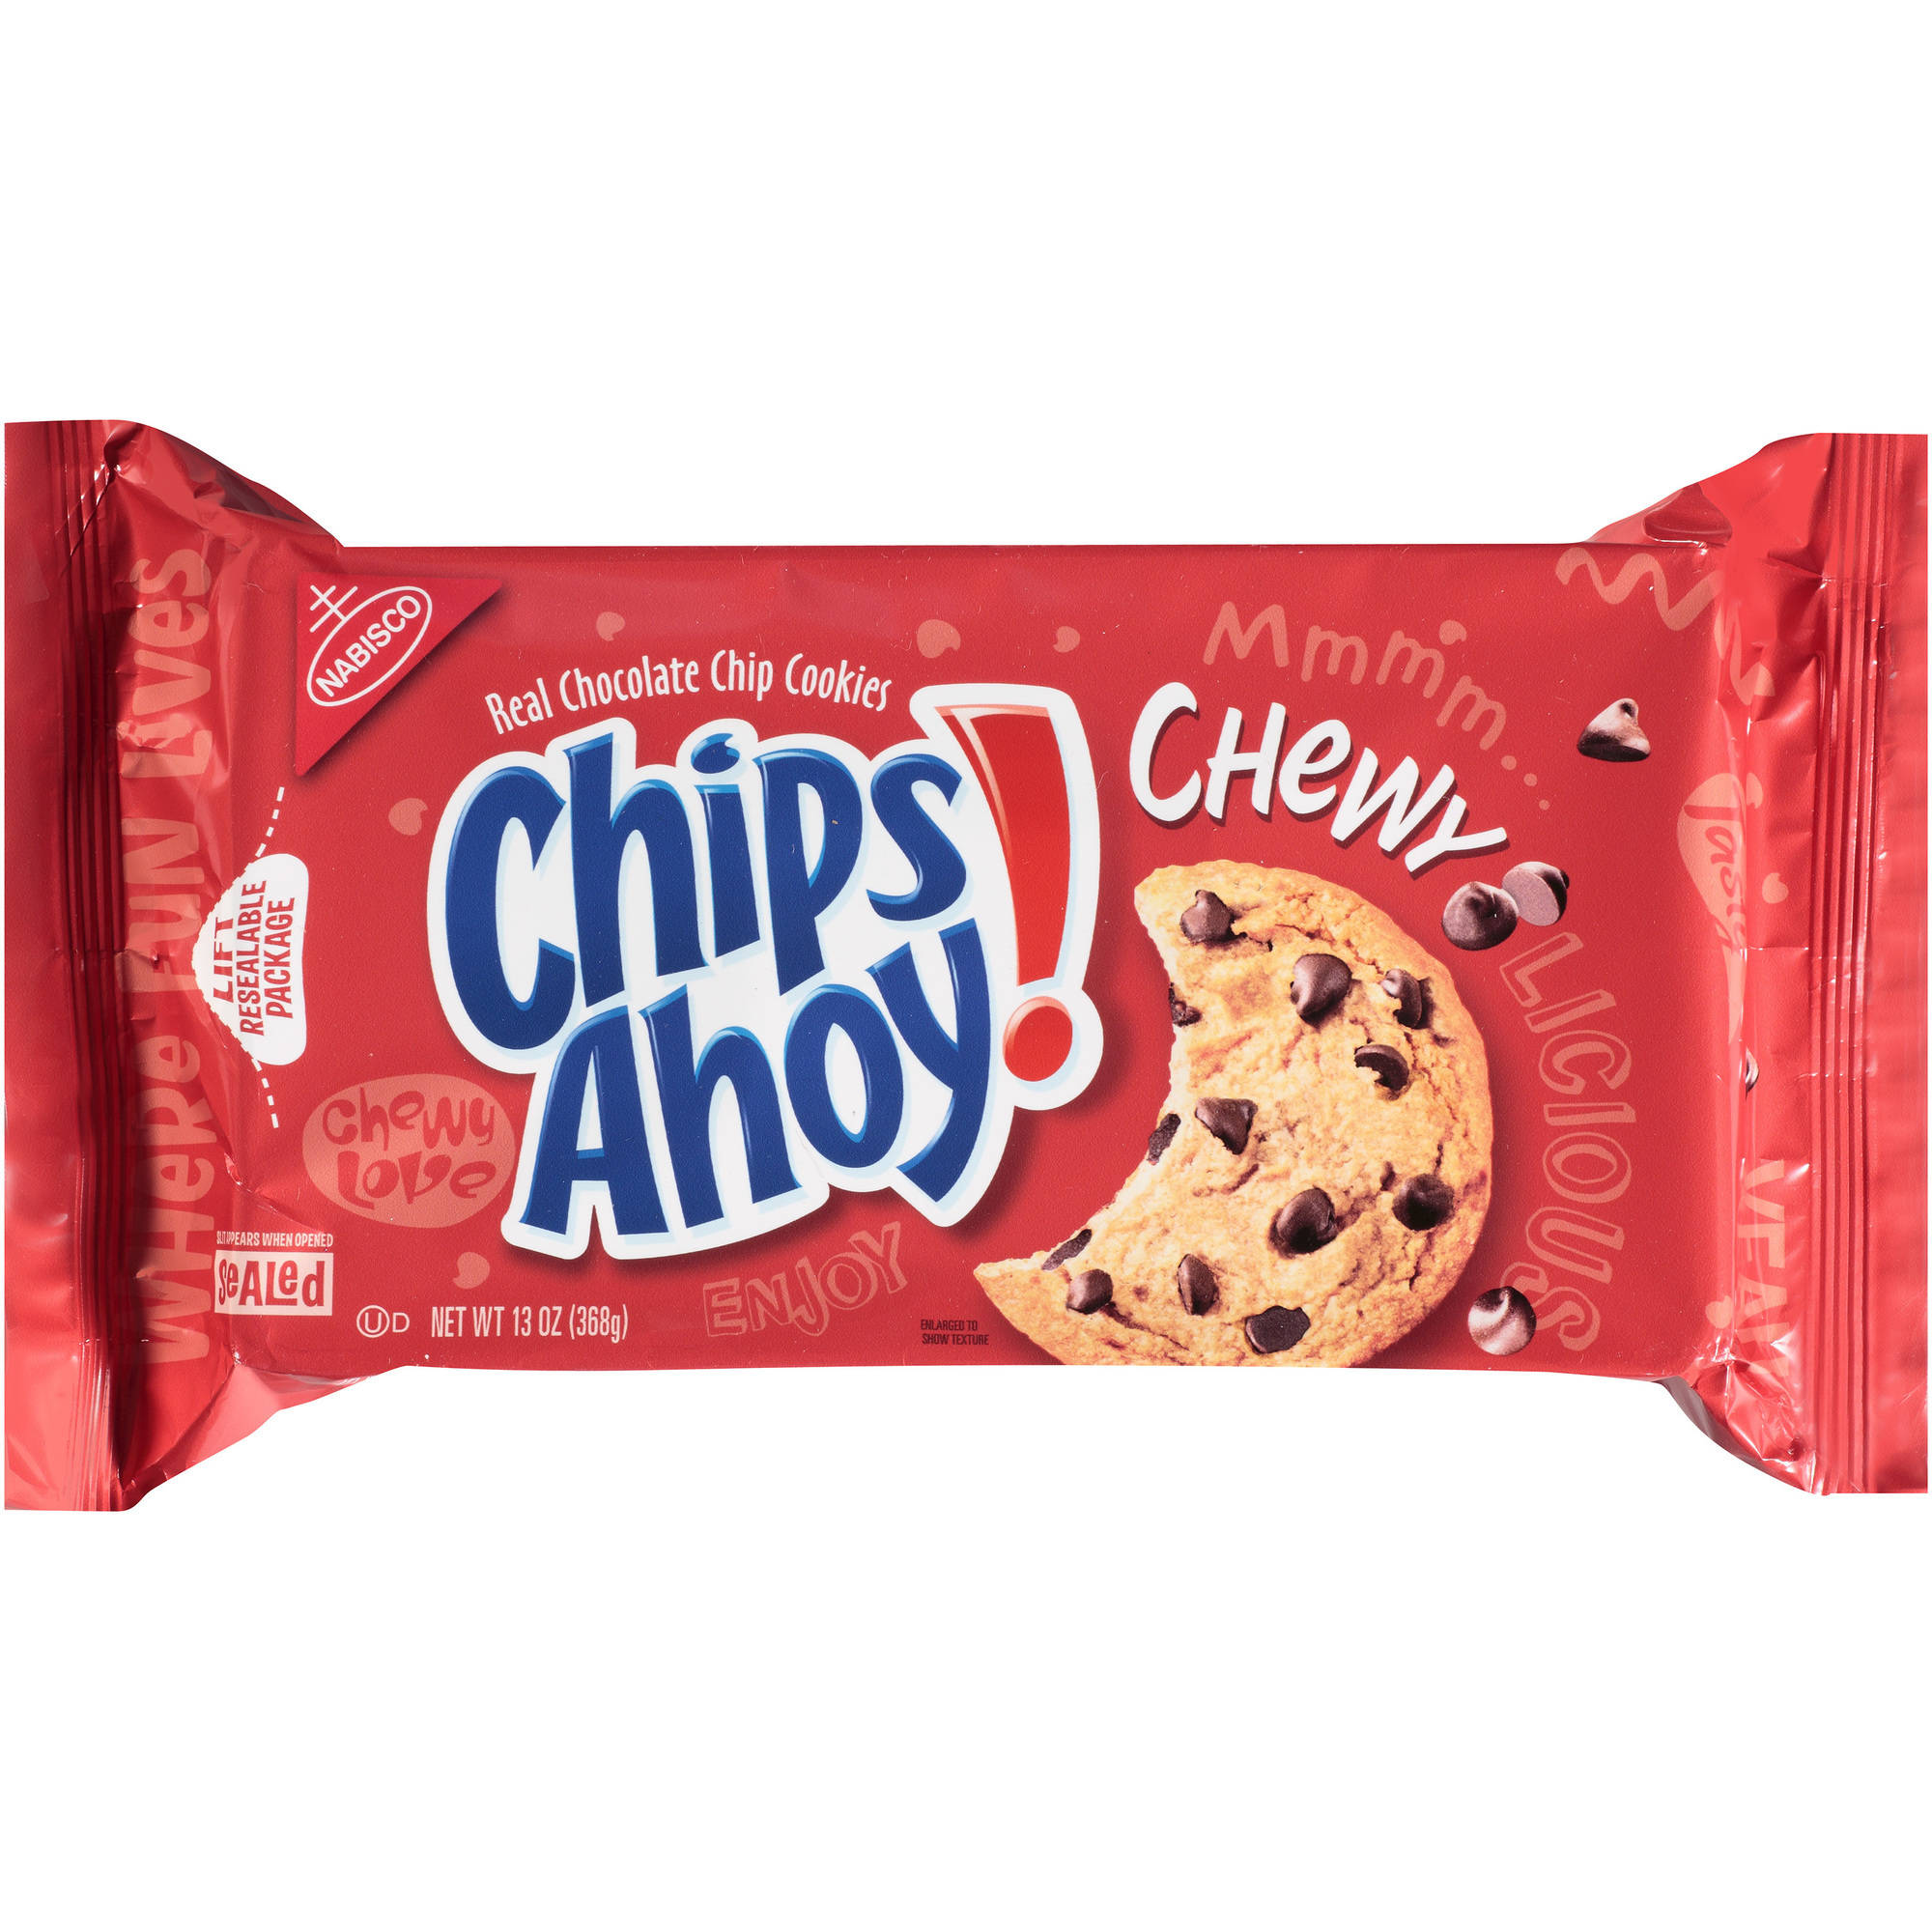 Nabisco Chips Ahoy! Chewy Chocolate Chip Cookies, 13 oz